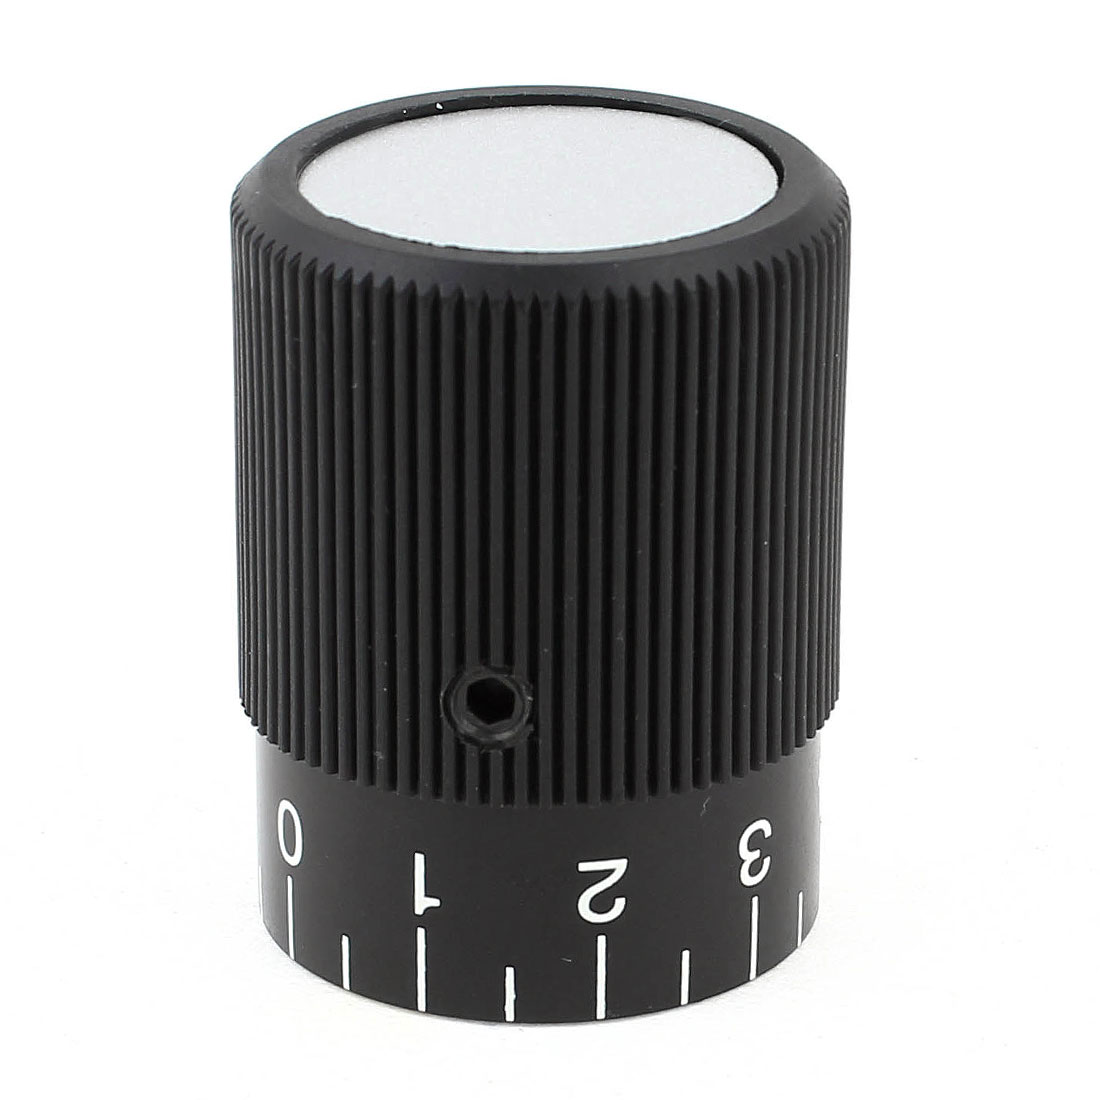 Mechanical 12mm Hole Dia 0-9 Scale Fine Tuning Knurled Control Knob